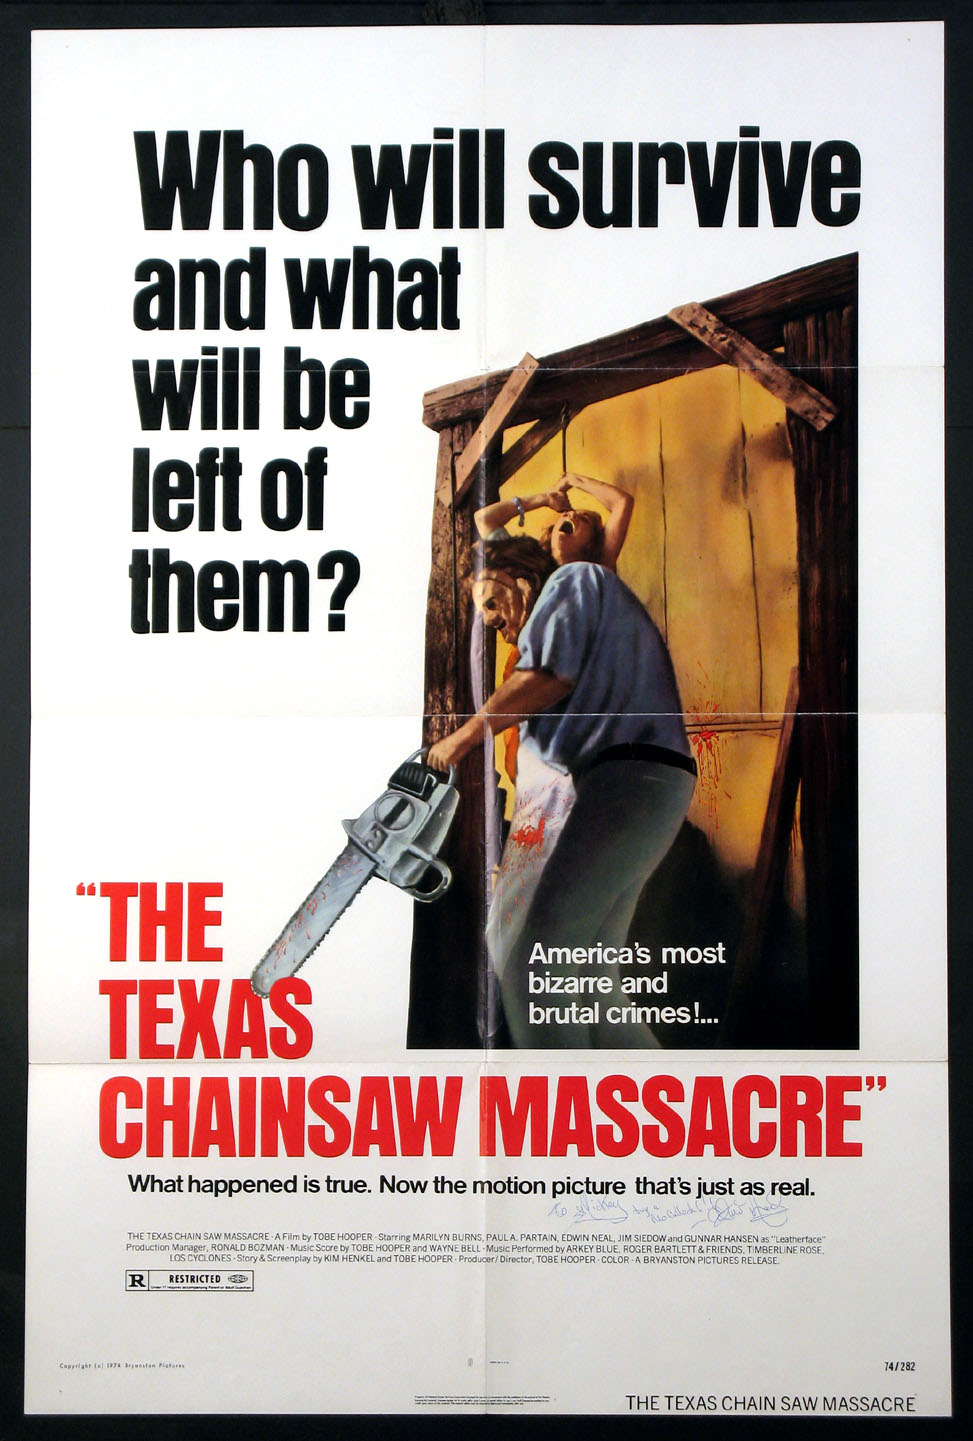 TEXAS CHAINSAW MASSACRE, THE @ FilmPosters.com